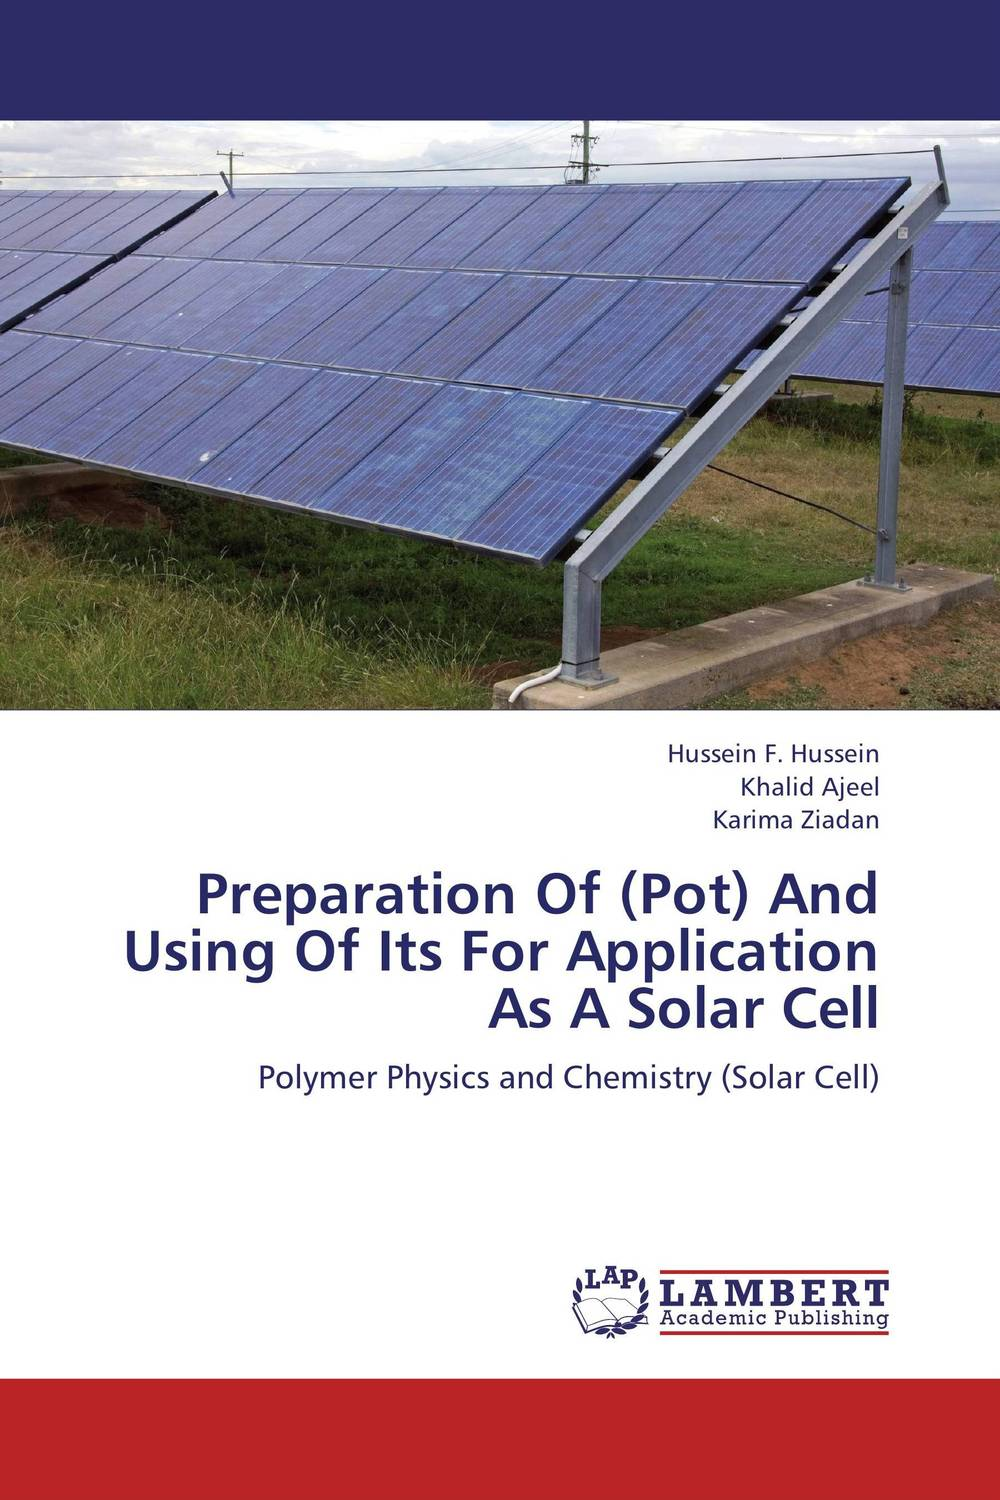 Preparation Of (Pot) And Using Of Its For Application As A Solar Cell application of conducting polymer electrodes in cell impedance sensing